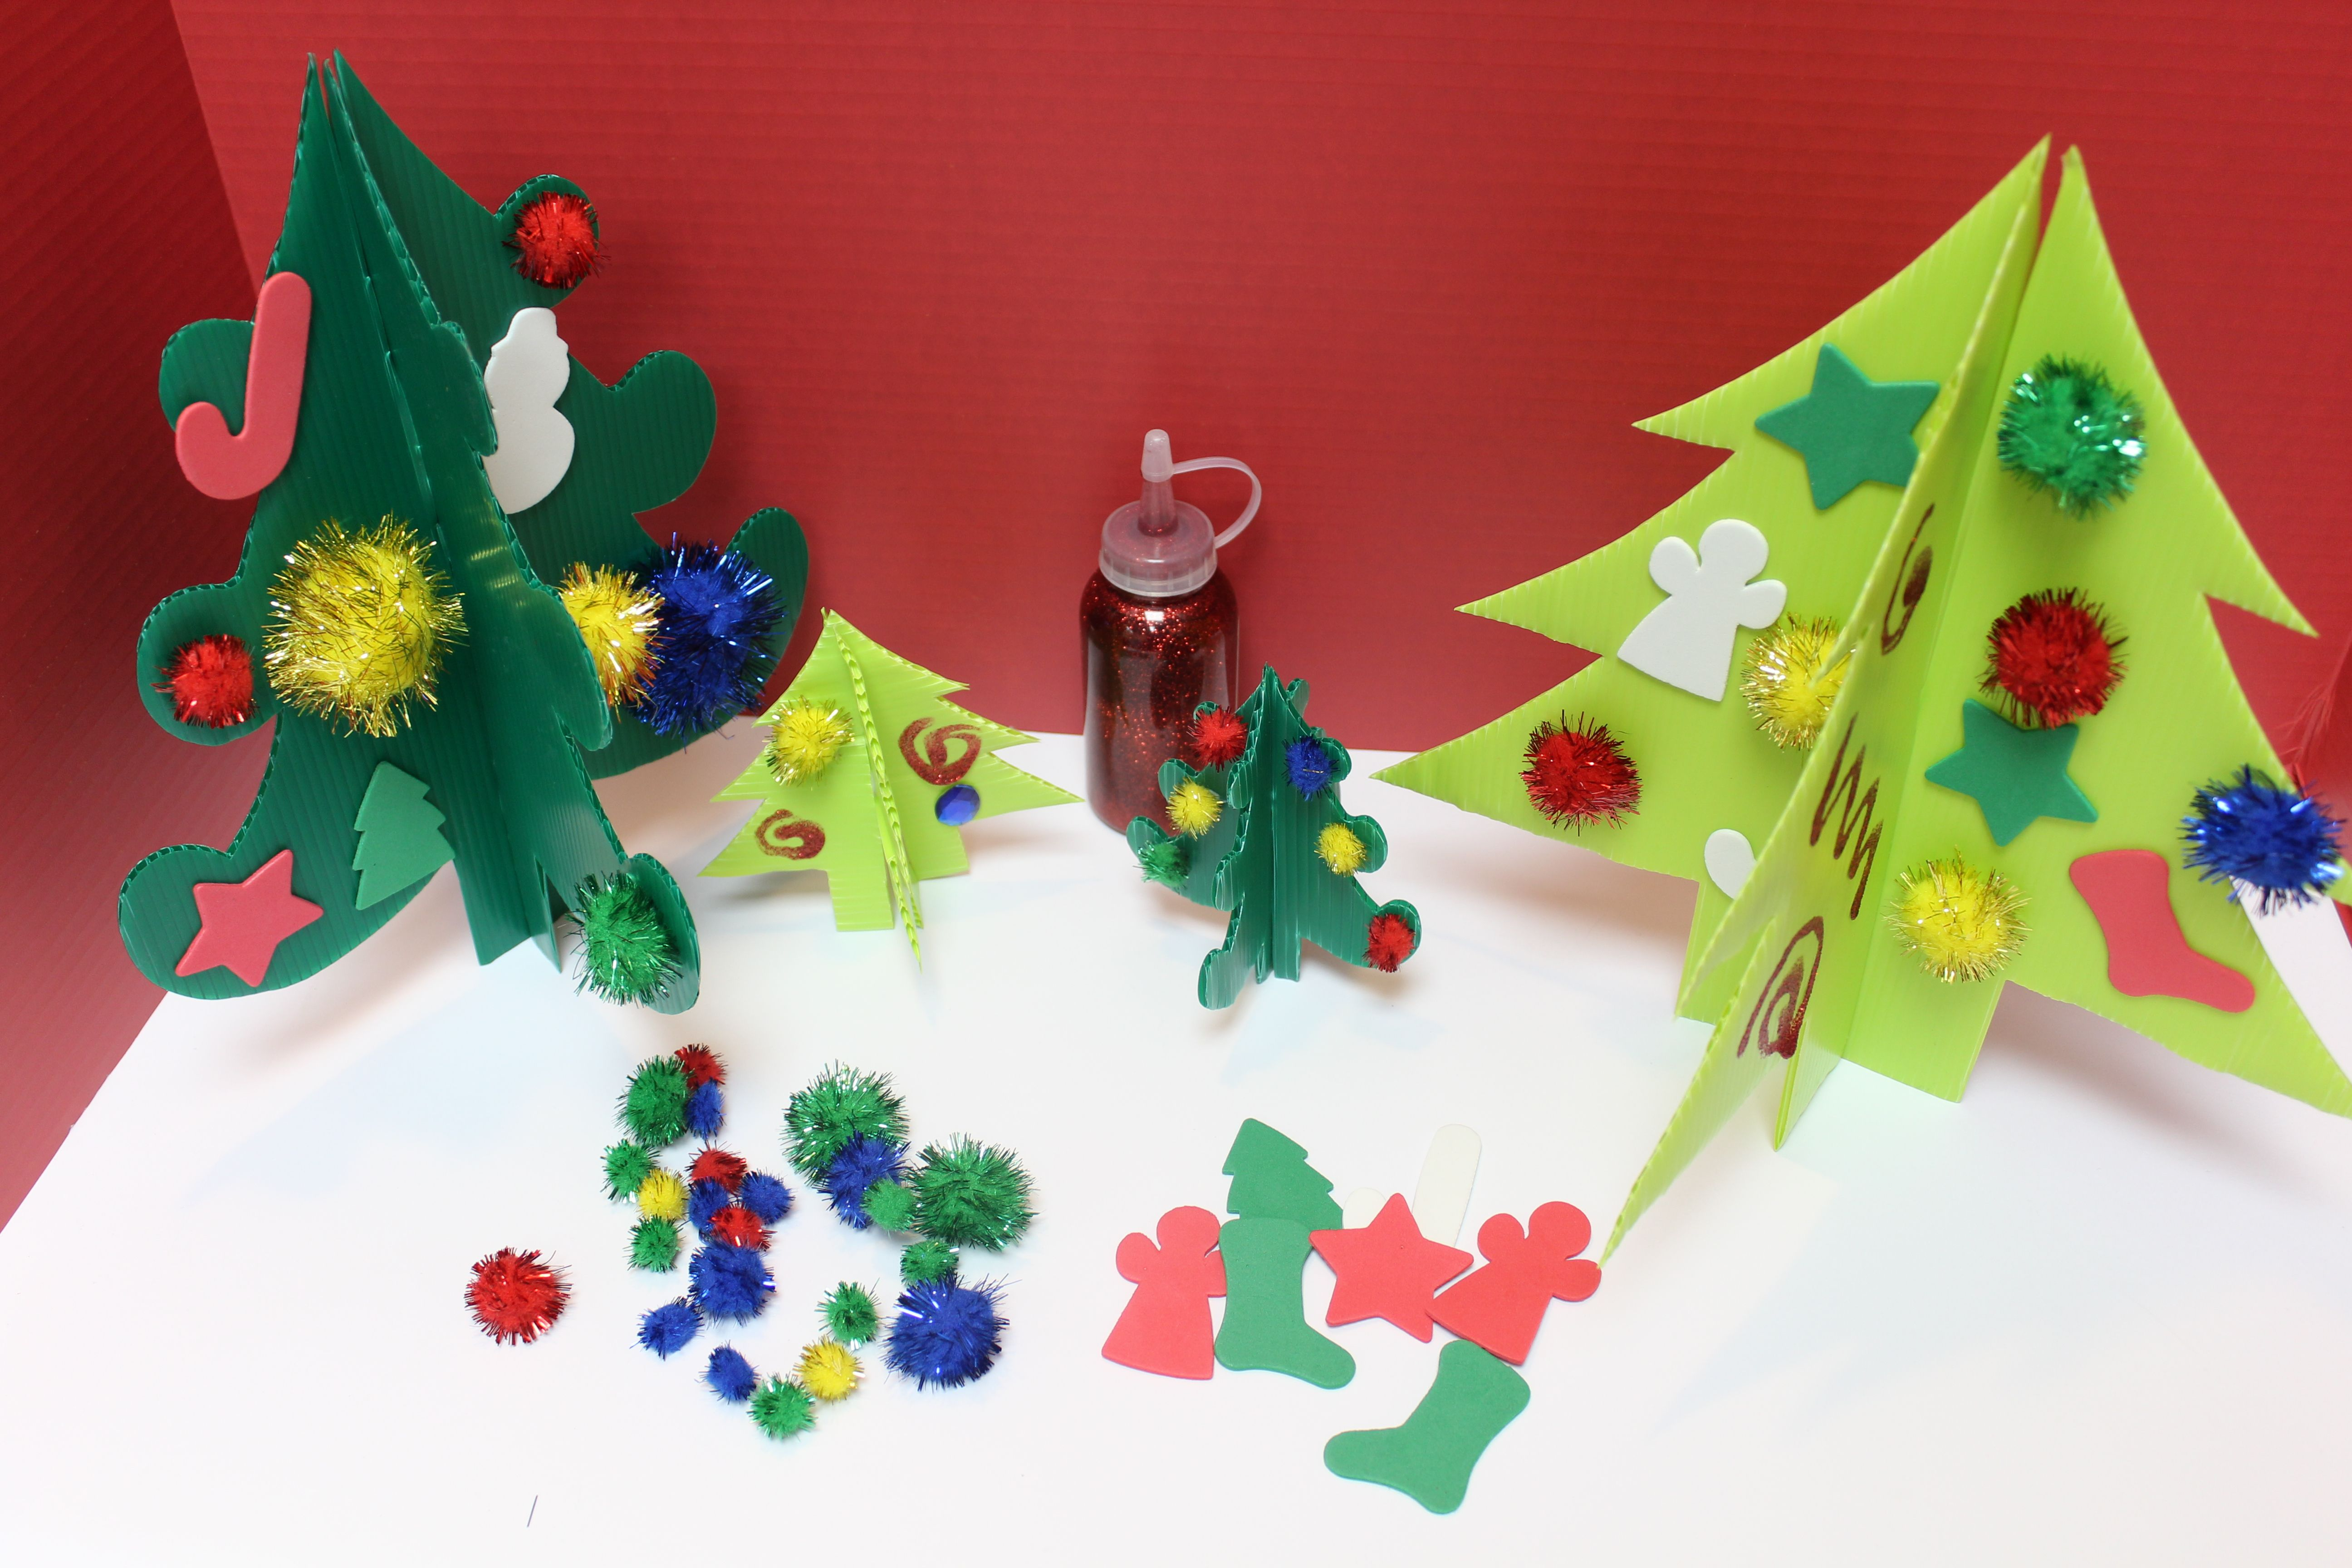 decorate your own 3D Christmas tree